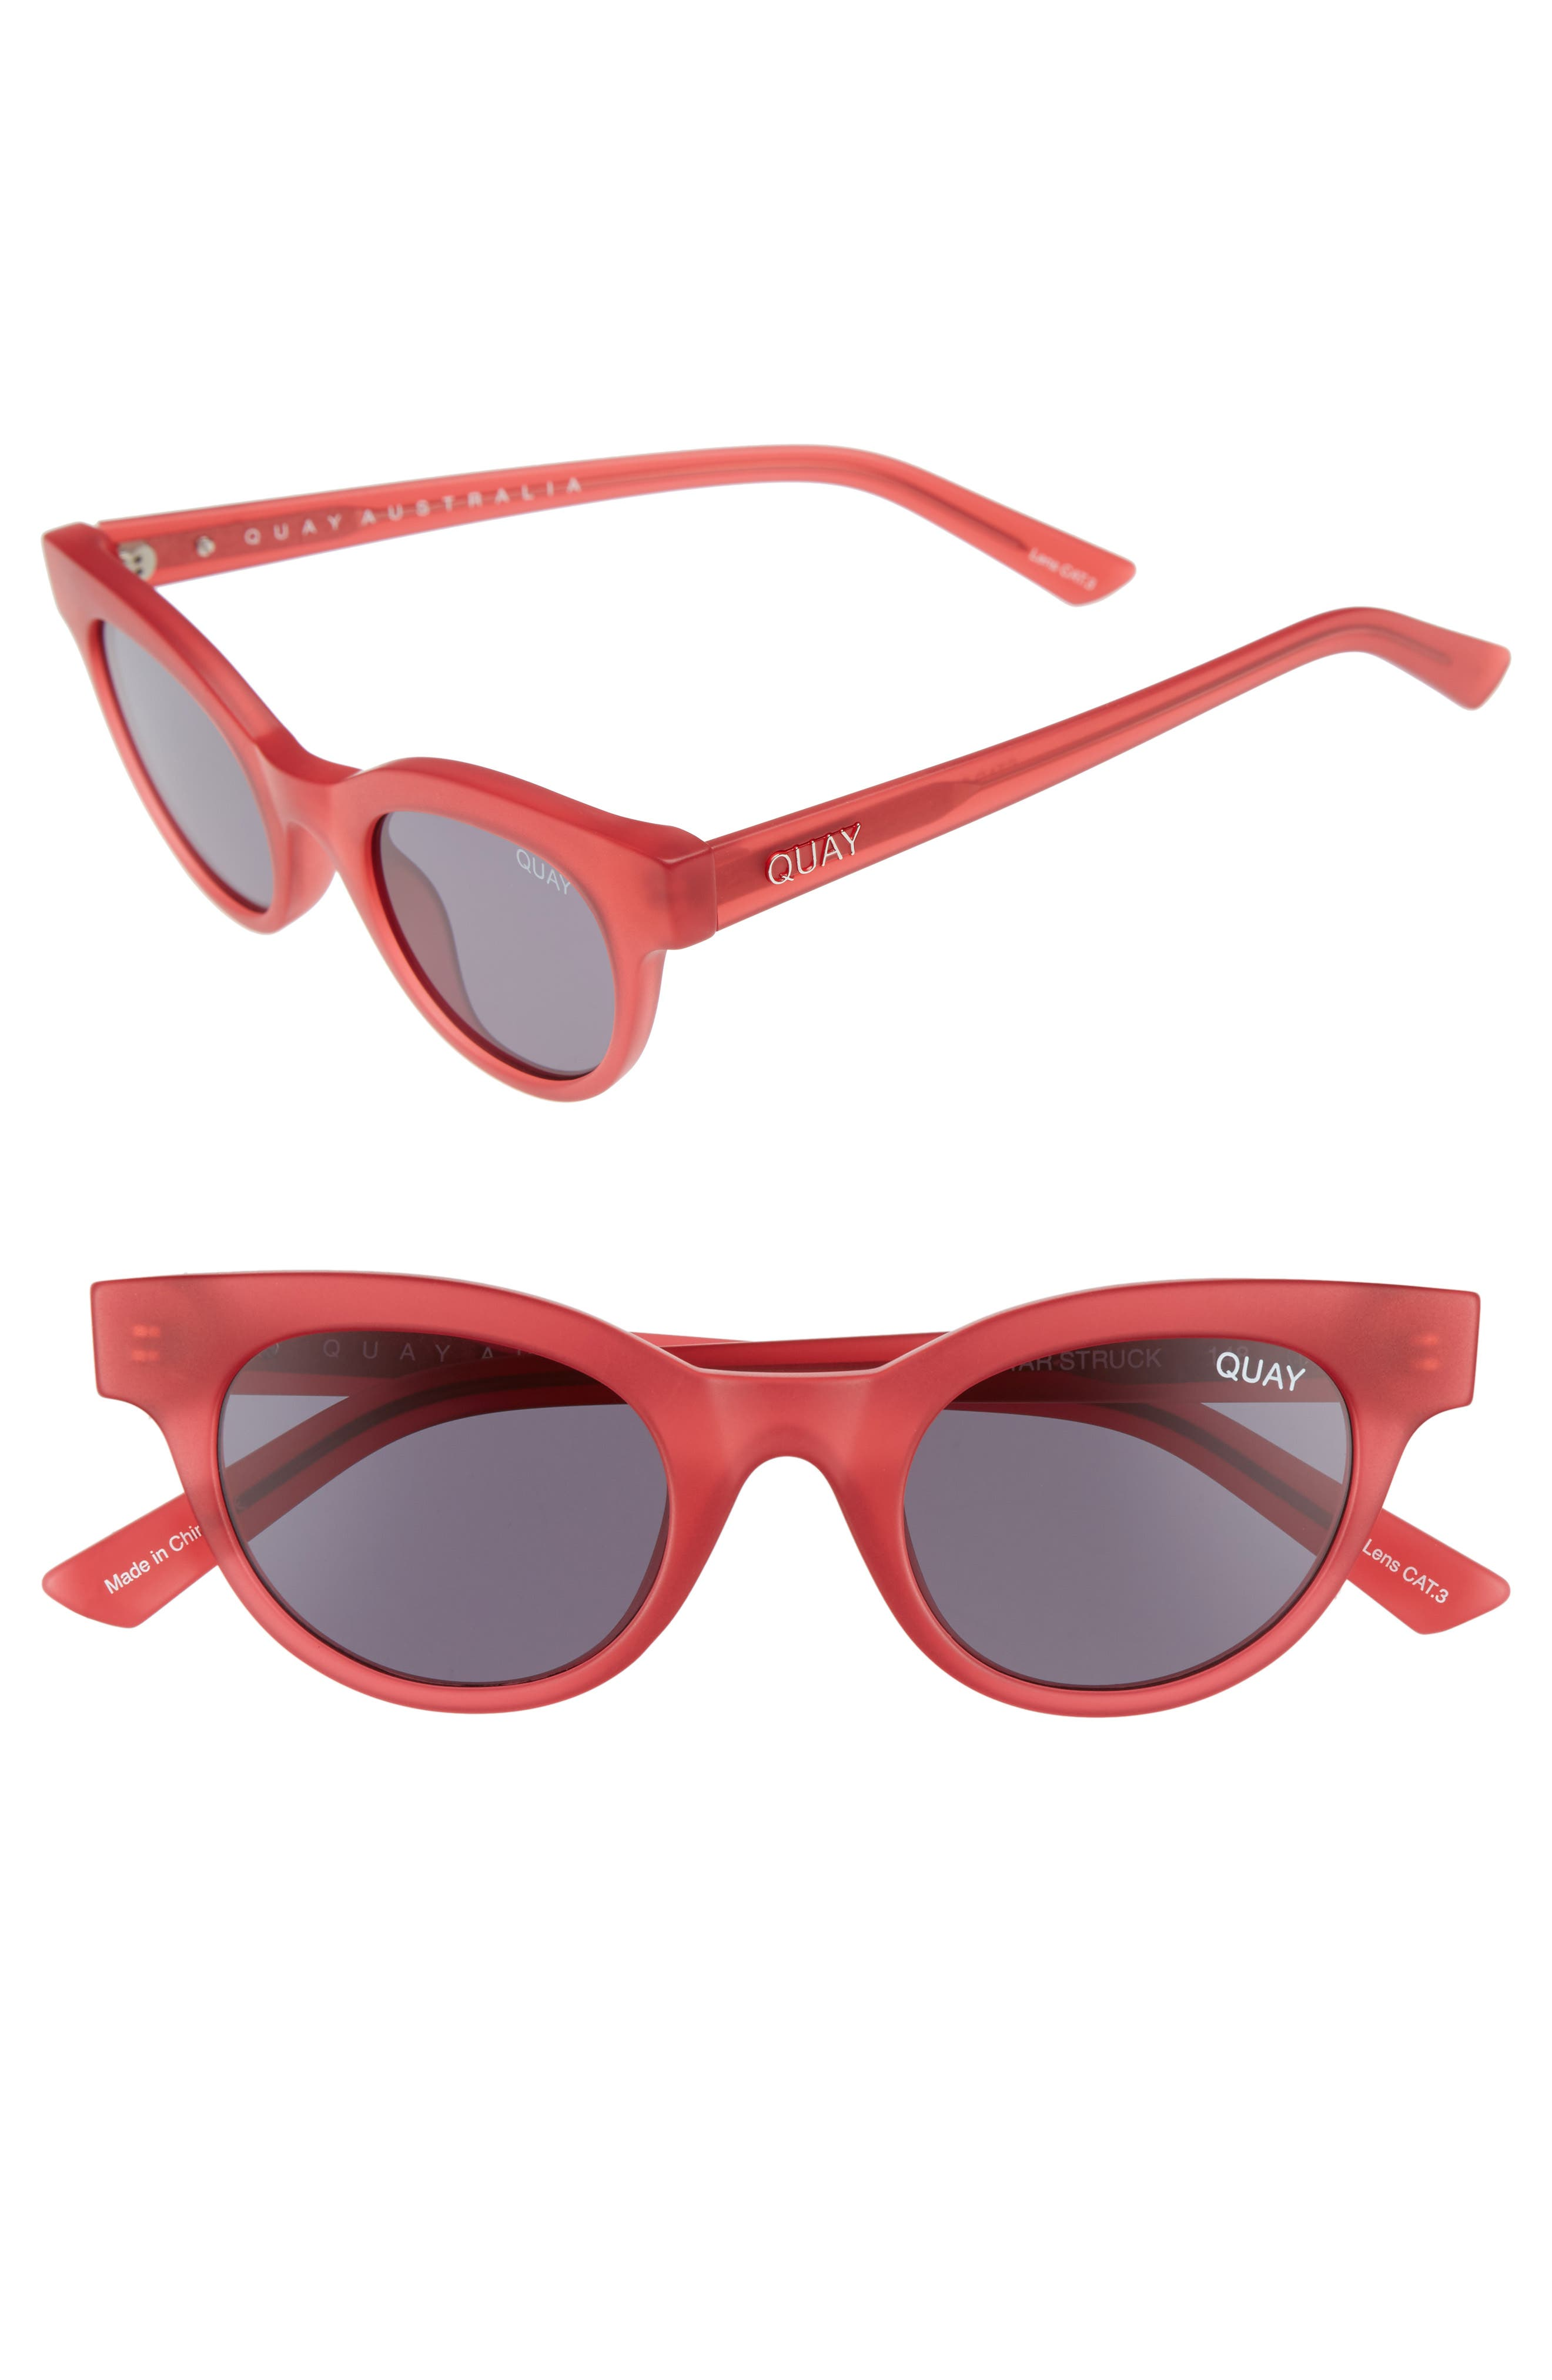 Starstruck 48mm Cat Eye Sunglasses,                             Main thumbnail 1, color,                             PINK SMOKE